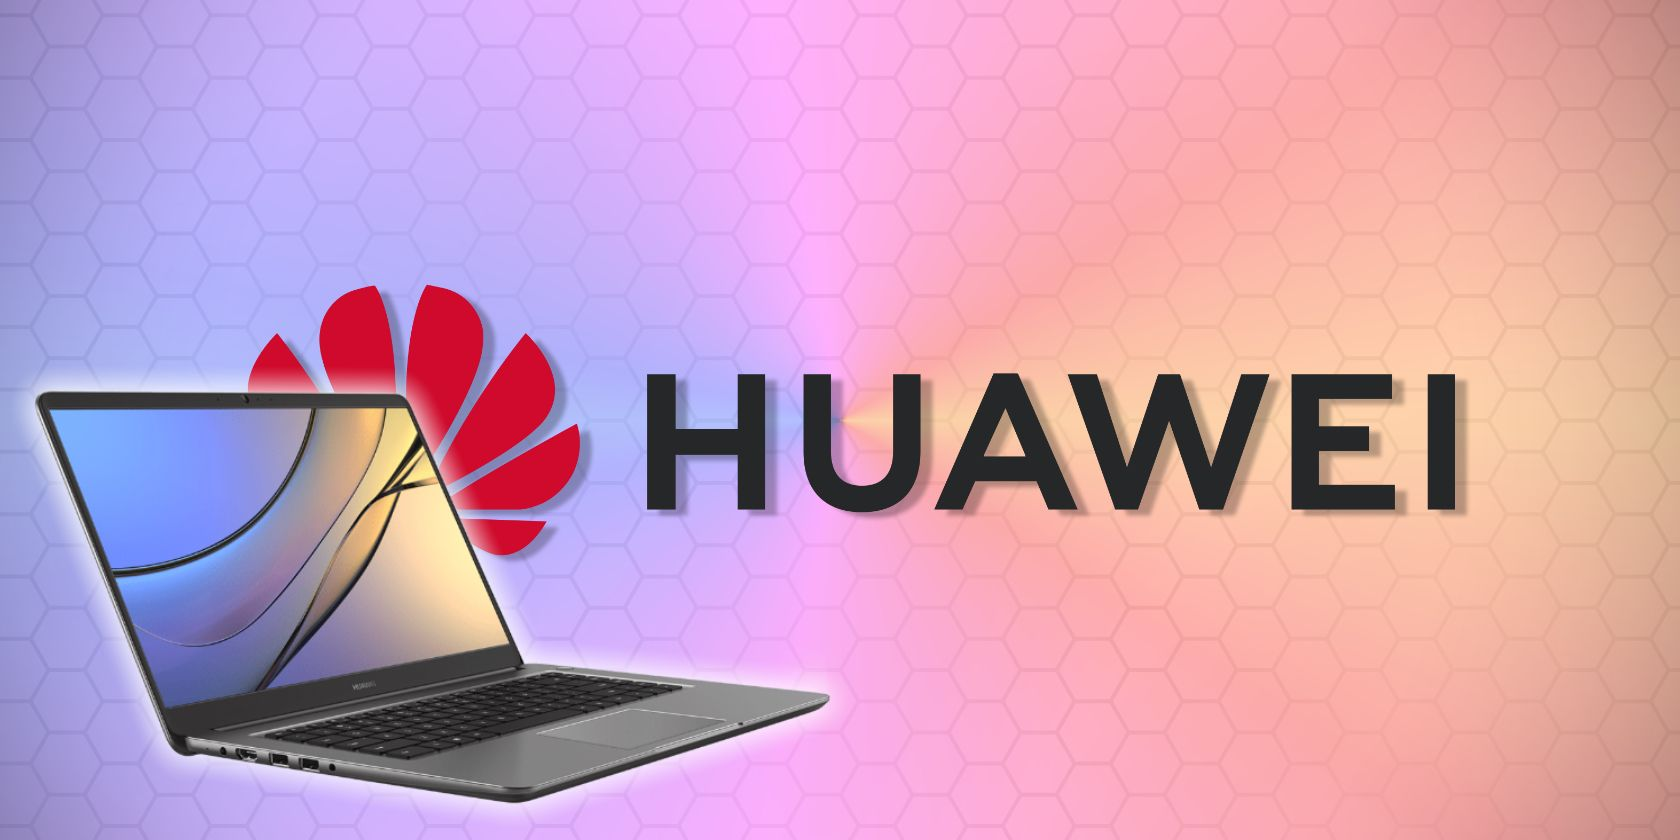 Huawei Launches Linux Laptop—But Things Aren't As They Seem